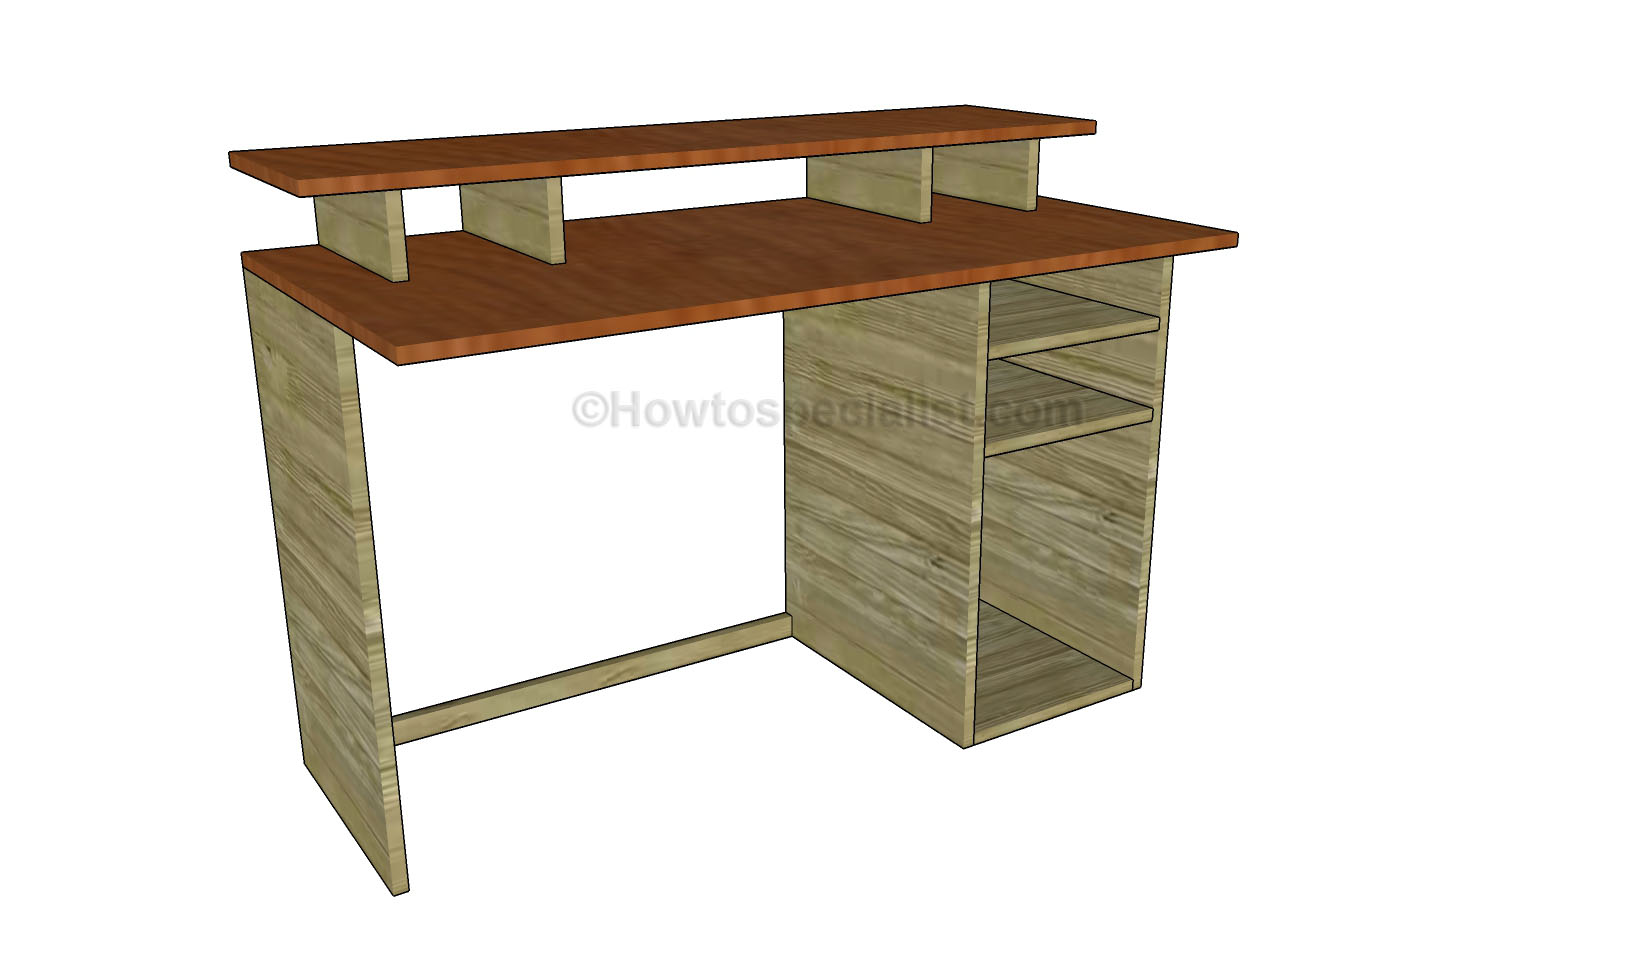 Office Desk Plans Howtospecialist How To Build Step